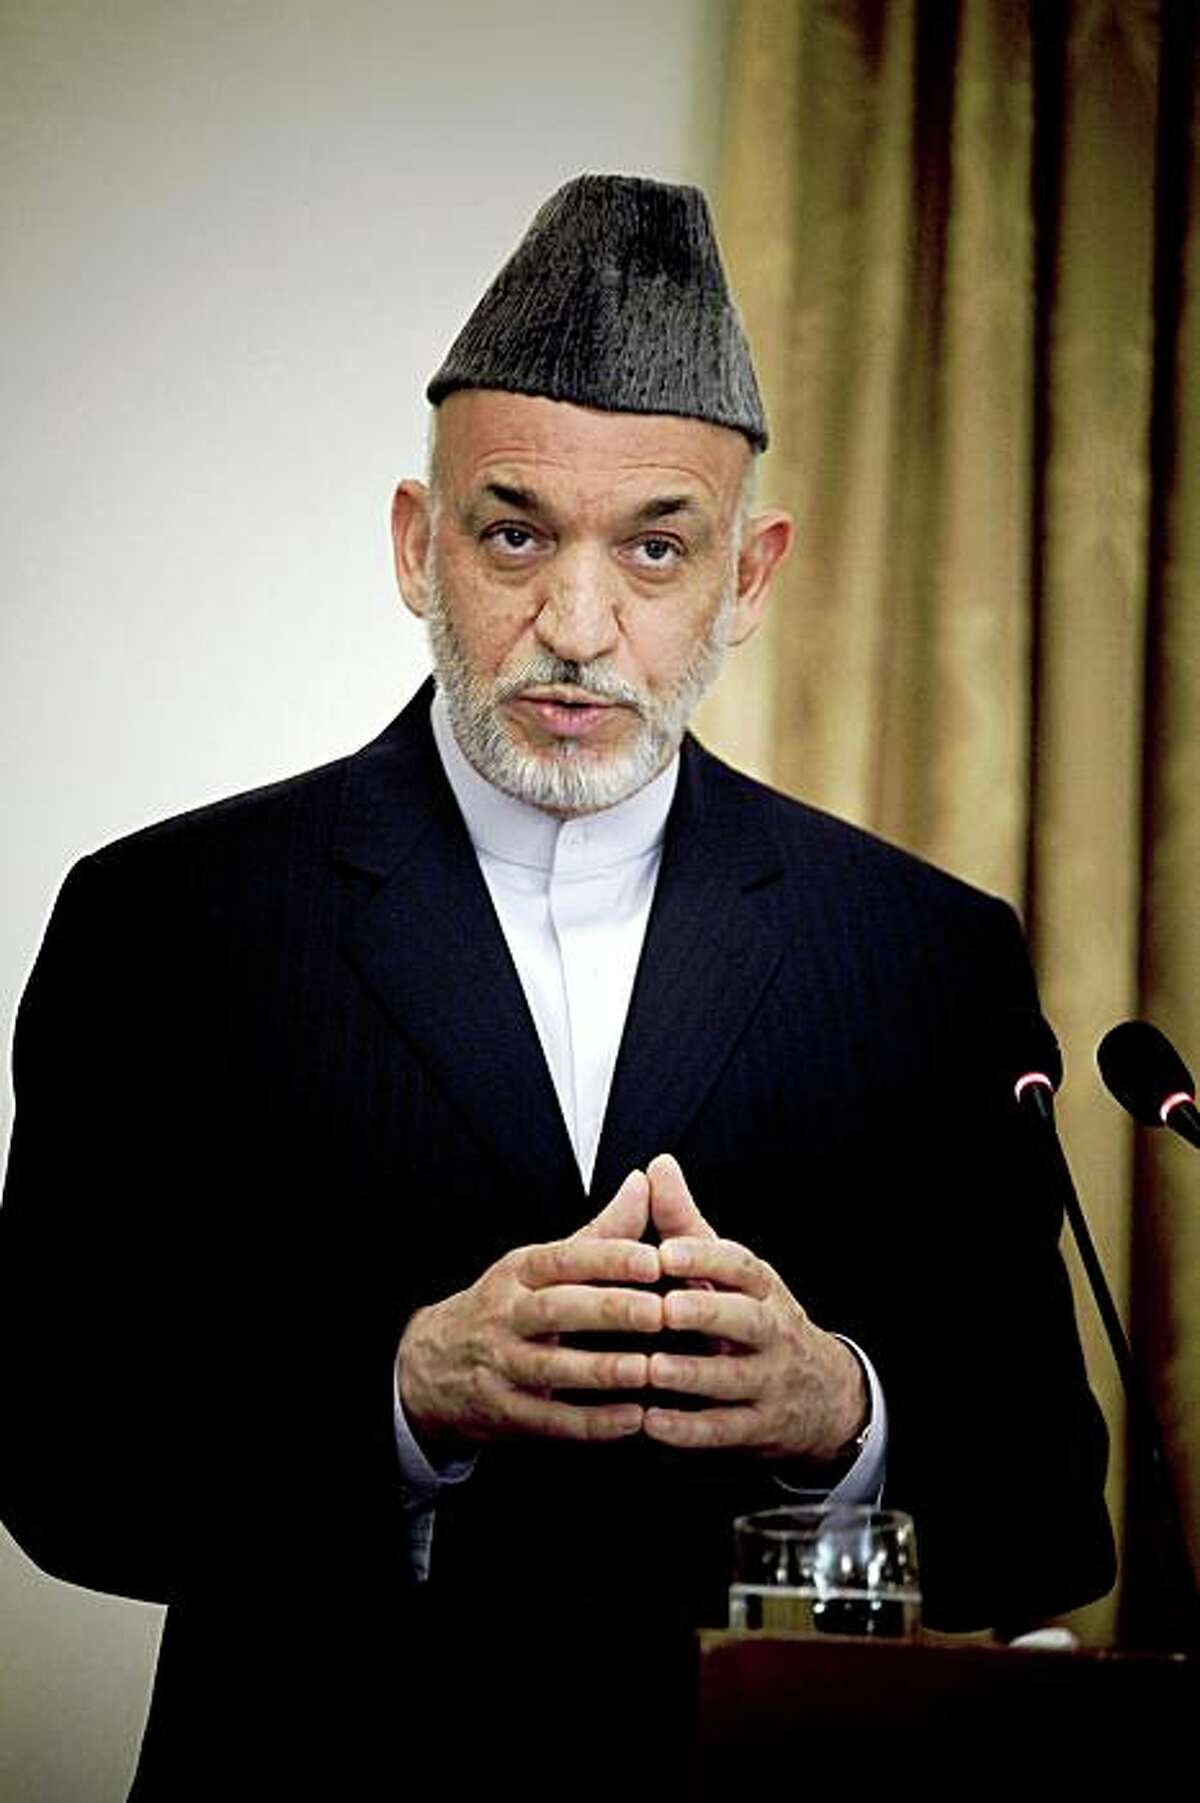 President Hamid Karzai speaks to reporters during a news conference in Kabul, Afghanistan, on June 17, 2009. With a nationwide election only weeks away, the paradox of Karzai has never seemed more apparent: He is at once deeply unpopular and likely to win. (Eros Hoagland/The New York Times)